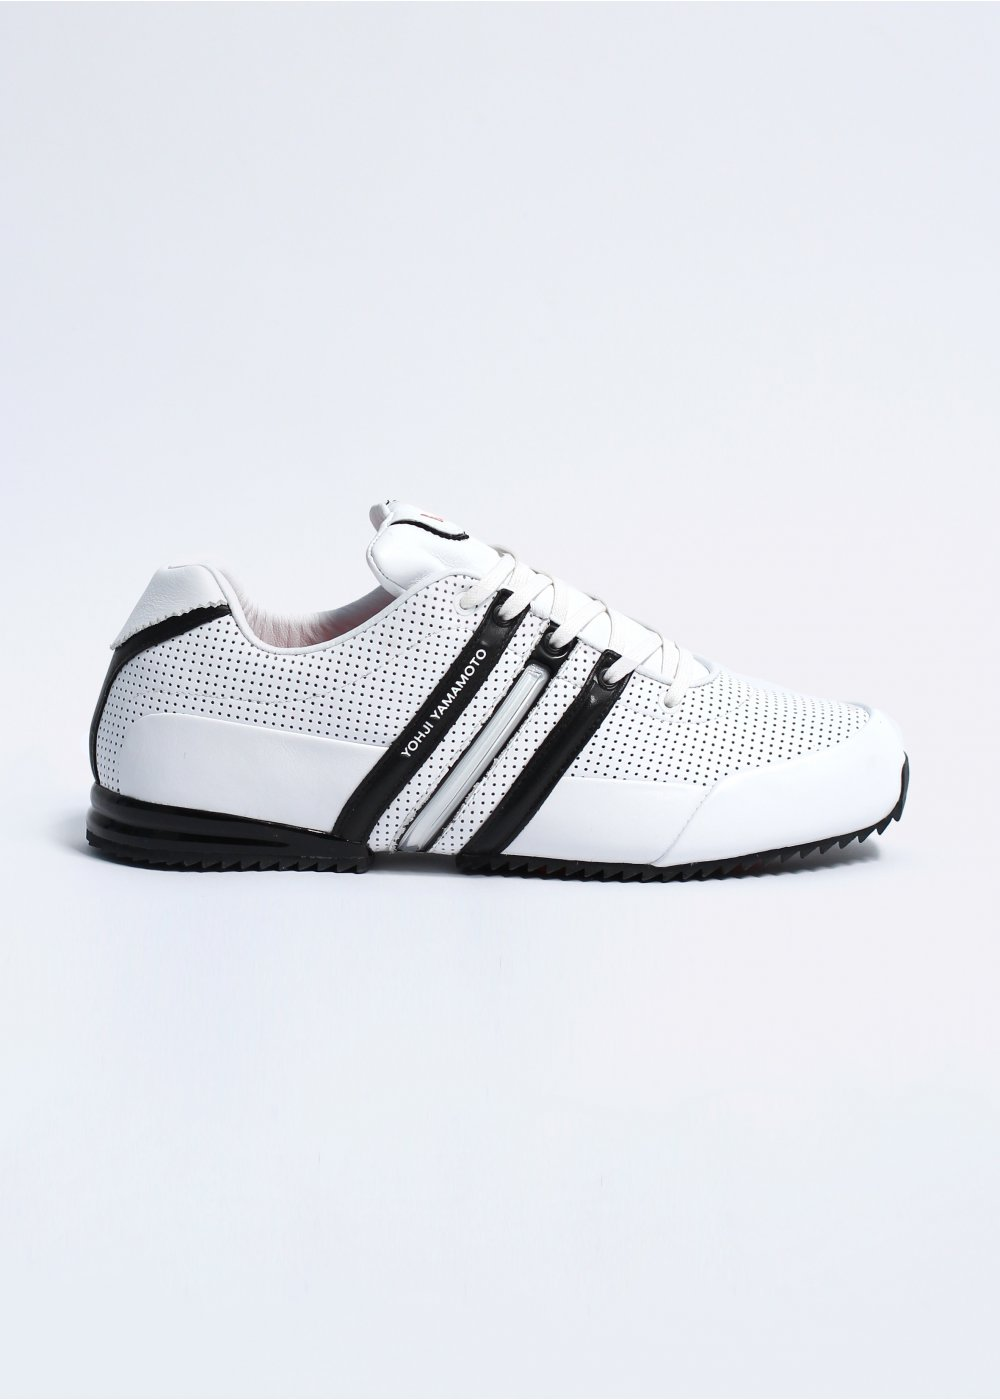 690108de2e9ca adidas Y-3 Sprint Classic II Perforated Leather Trainers Black   White